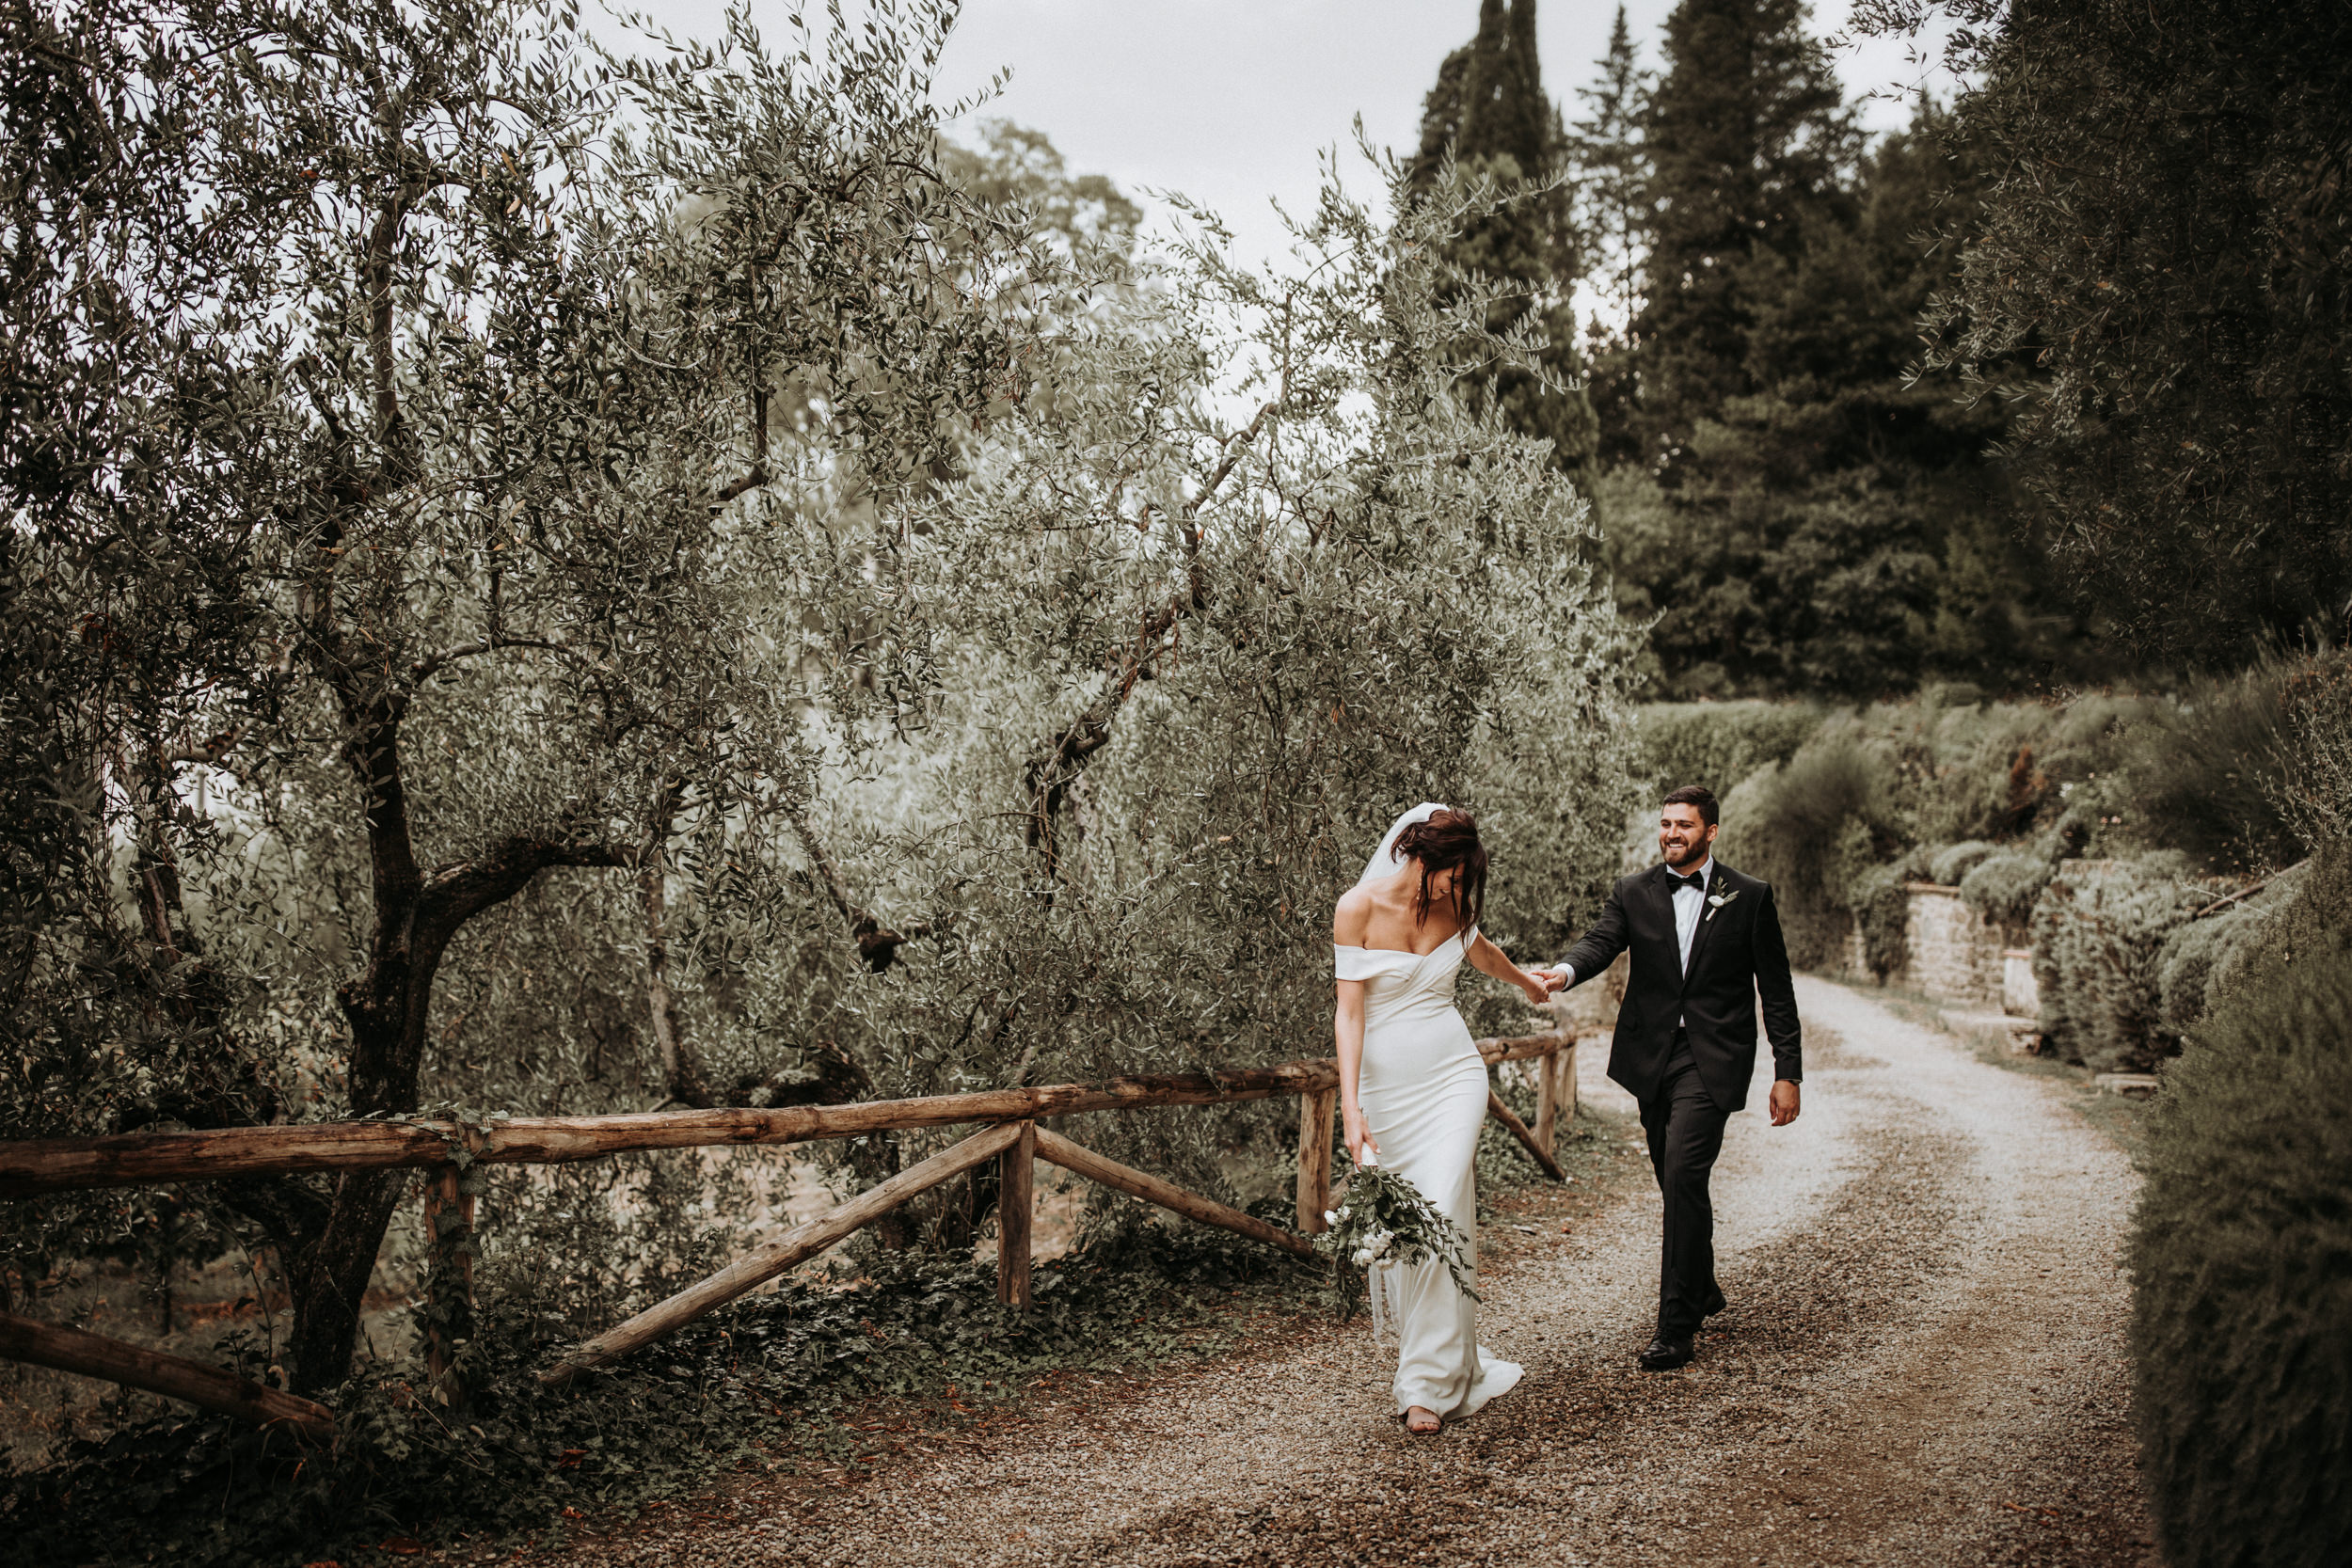 dm_photography_KW_Tuscanyweddingday_300